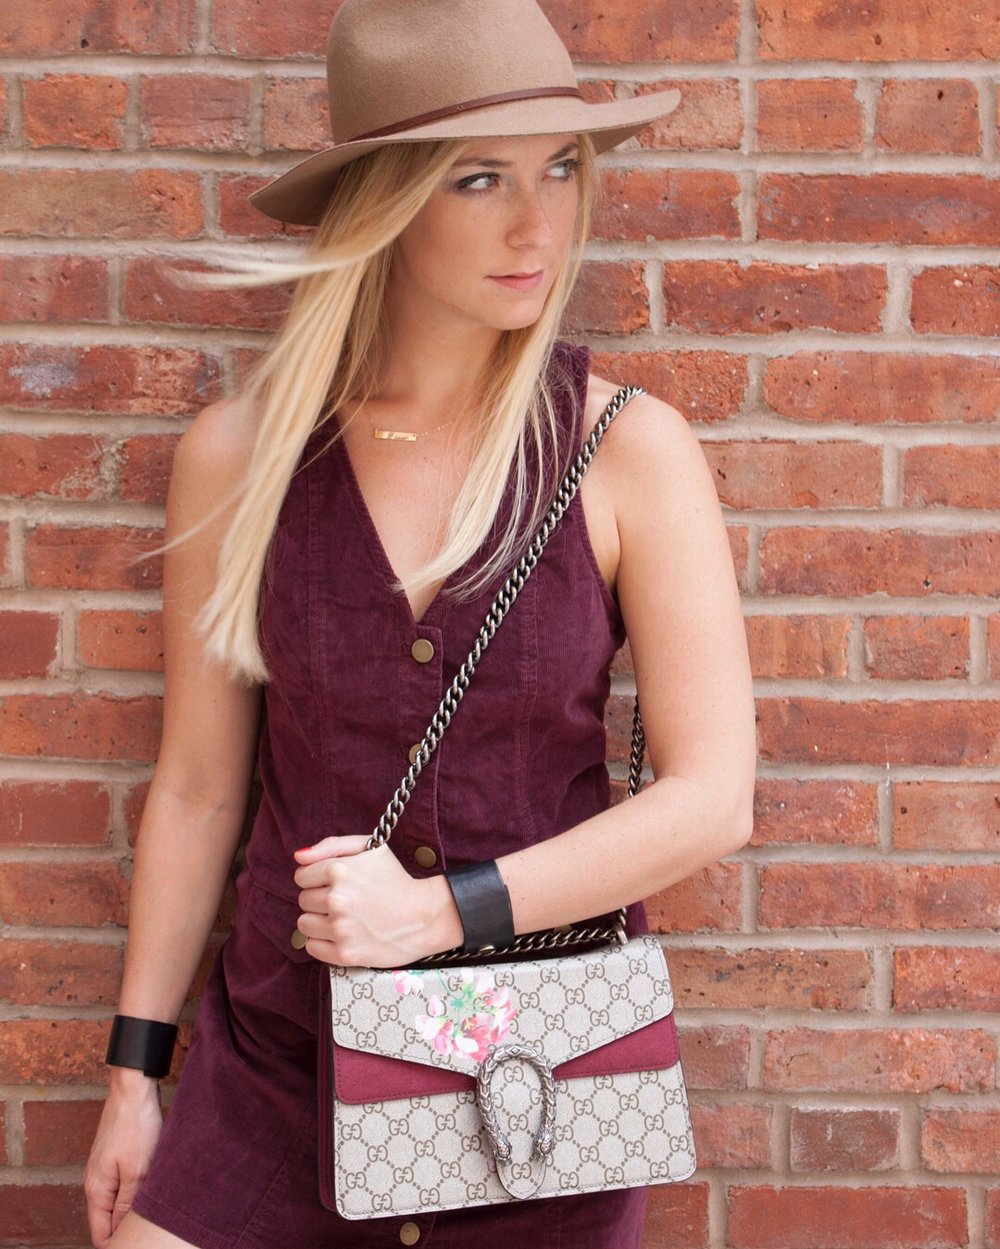 Dress: Urban Outfitters, Hat: Brixton, Bag: Gucci, Leather Wristcuffs: Rendor+Steel